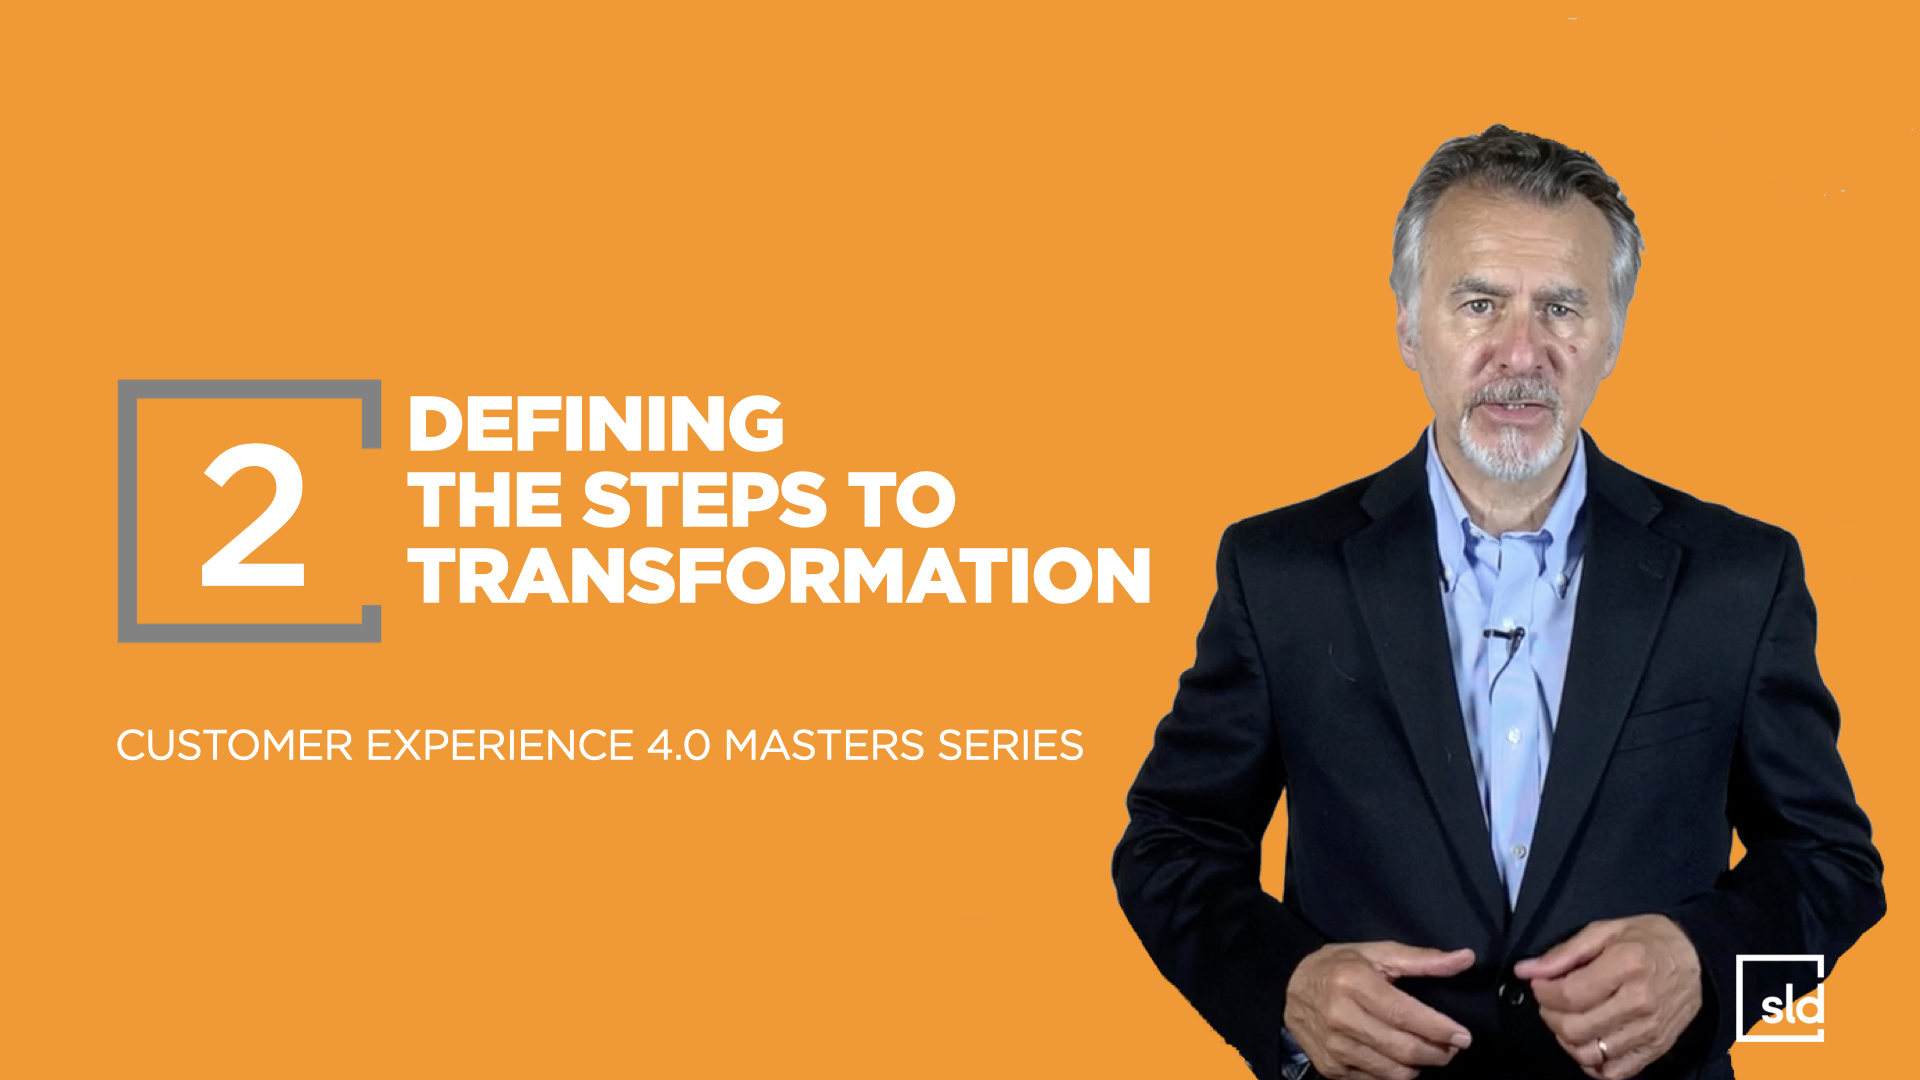 2. Defining the Steps to Transformation